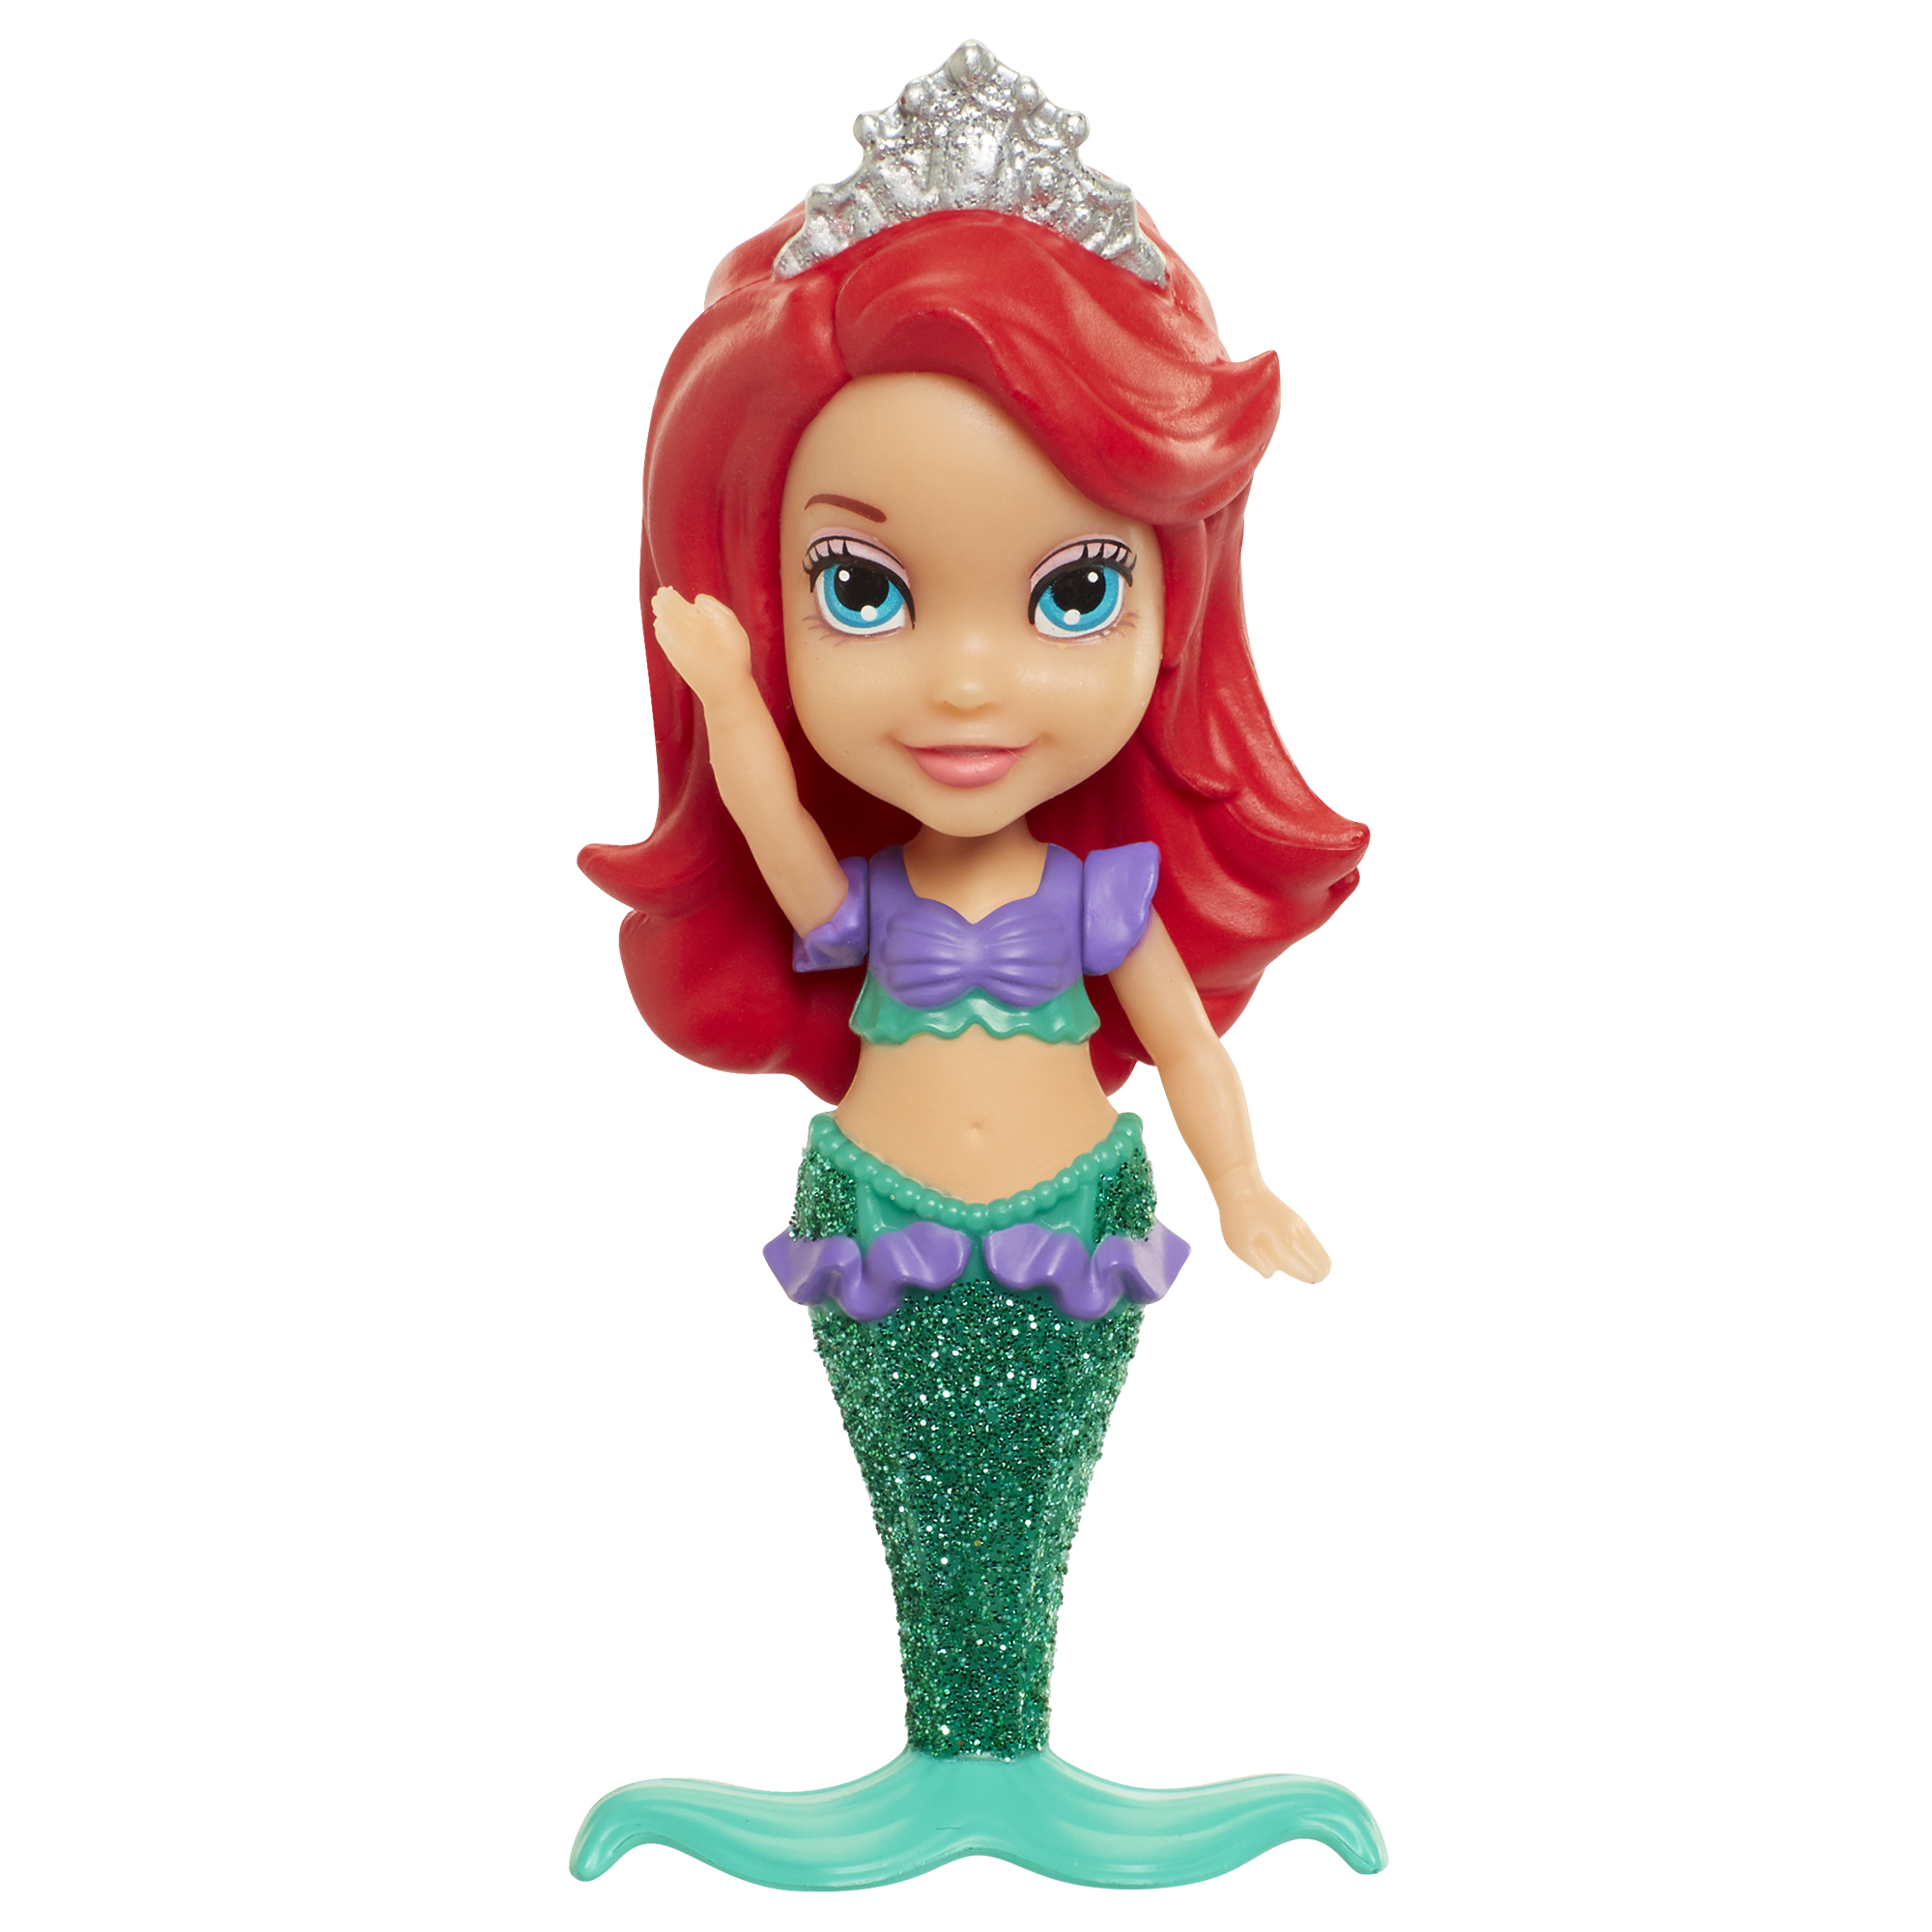 Ariel (Mermaid) 3 inch Mini Doll Disney Princess